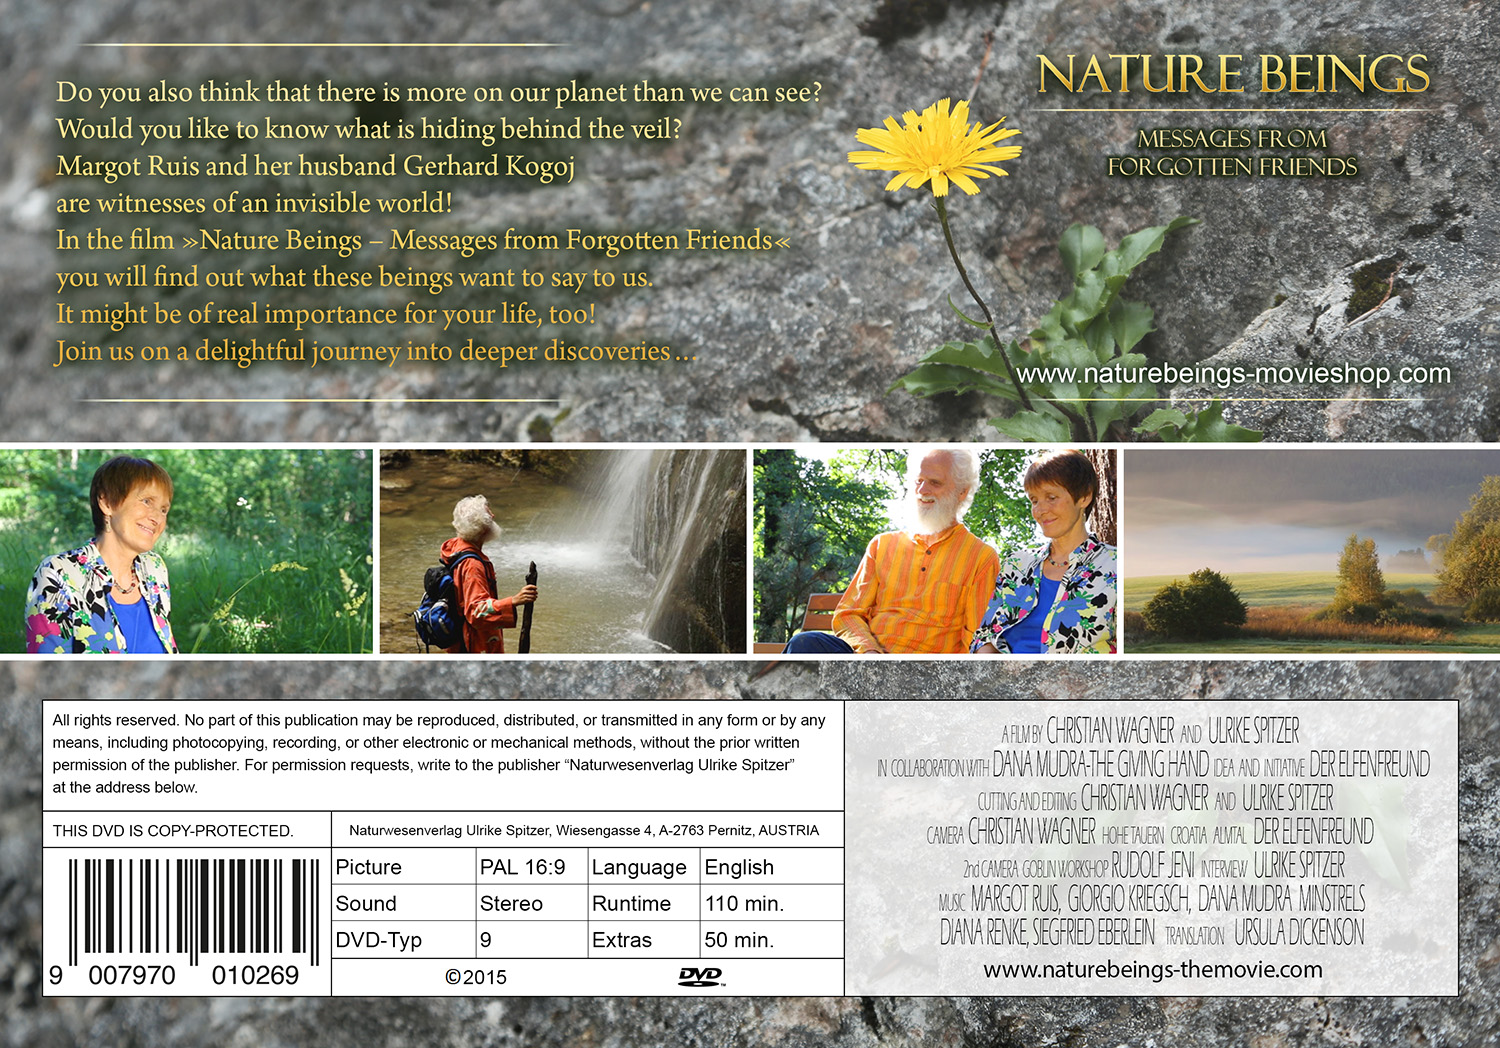 Nature Beings - Movieshop | DVD Nature Beings - Messages From